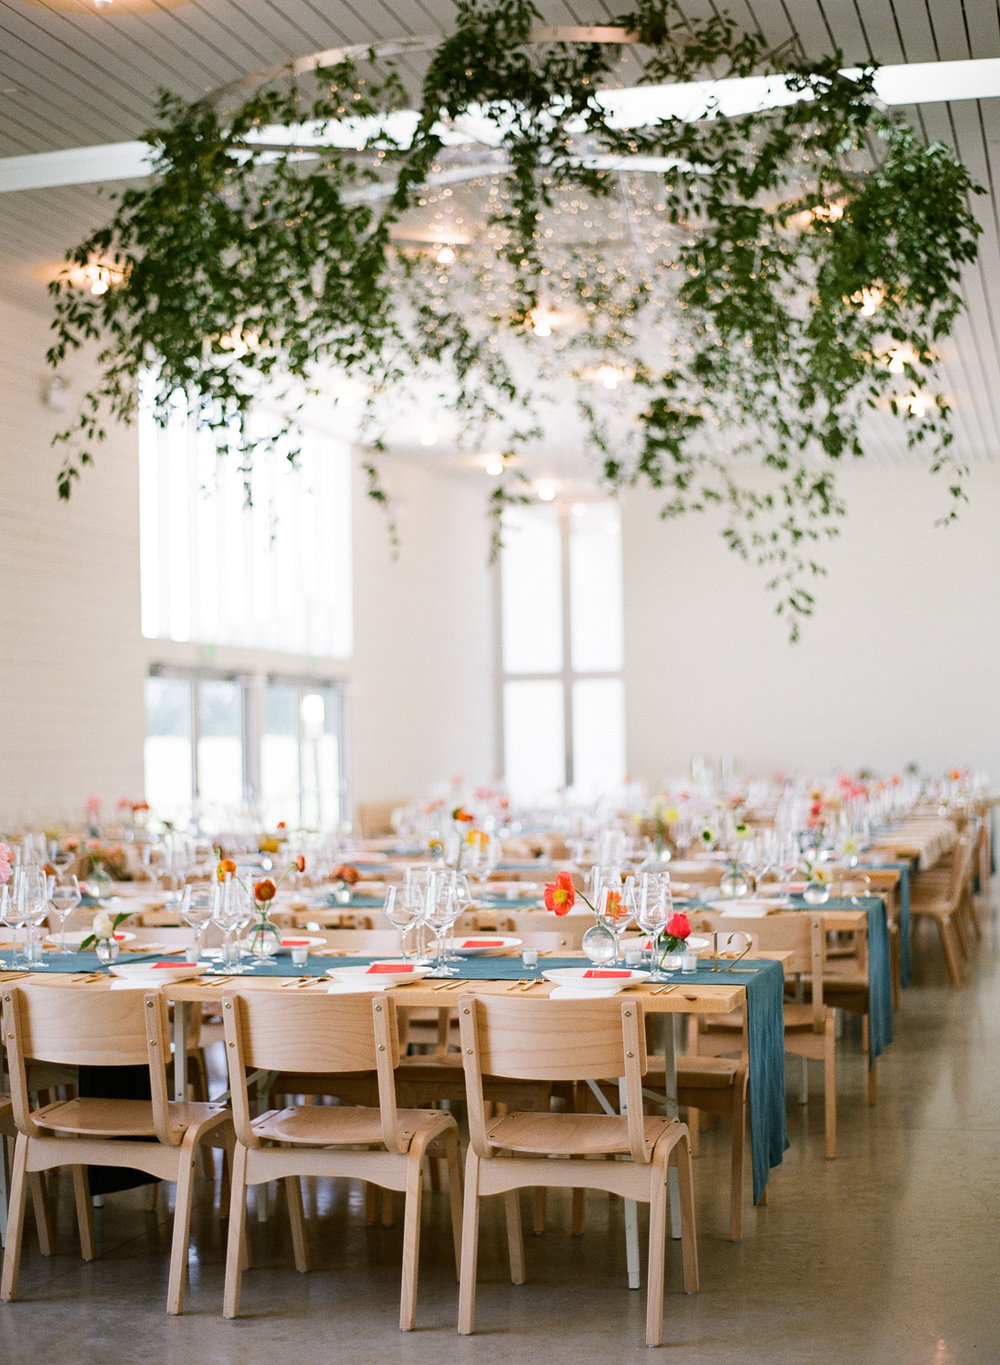 PROSPECT_HOUSE_WEDDING_AUSTIN_TX_BY_MATTHEW_MOORE_PHOTOGRAPHY_00177.jpg